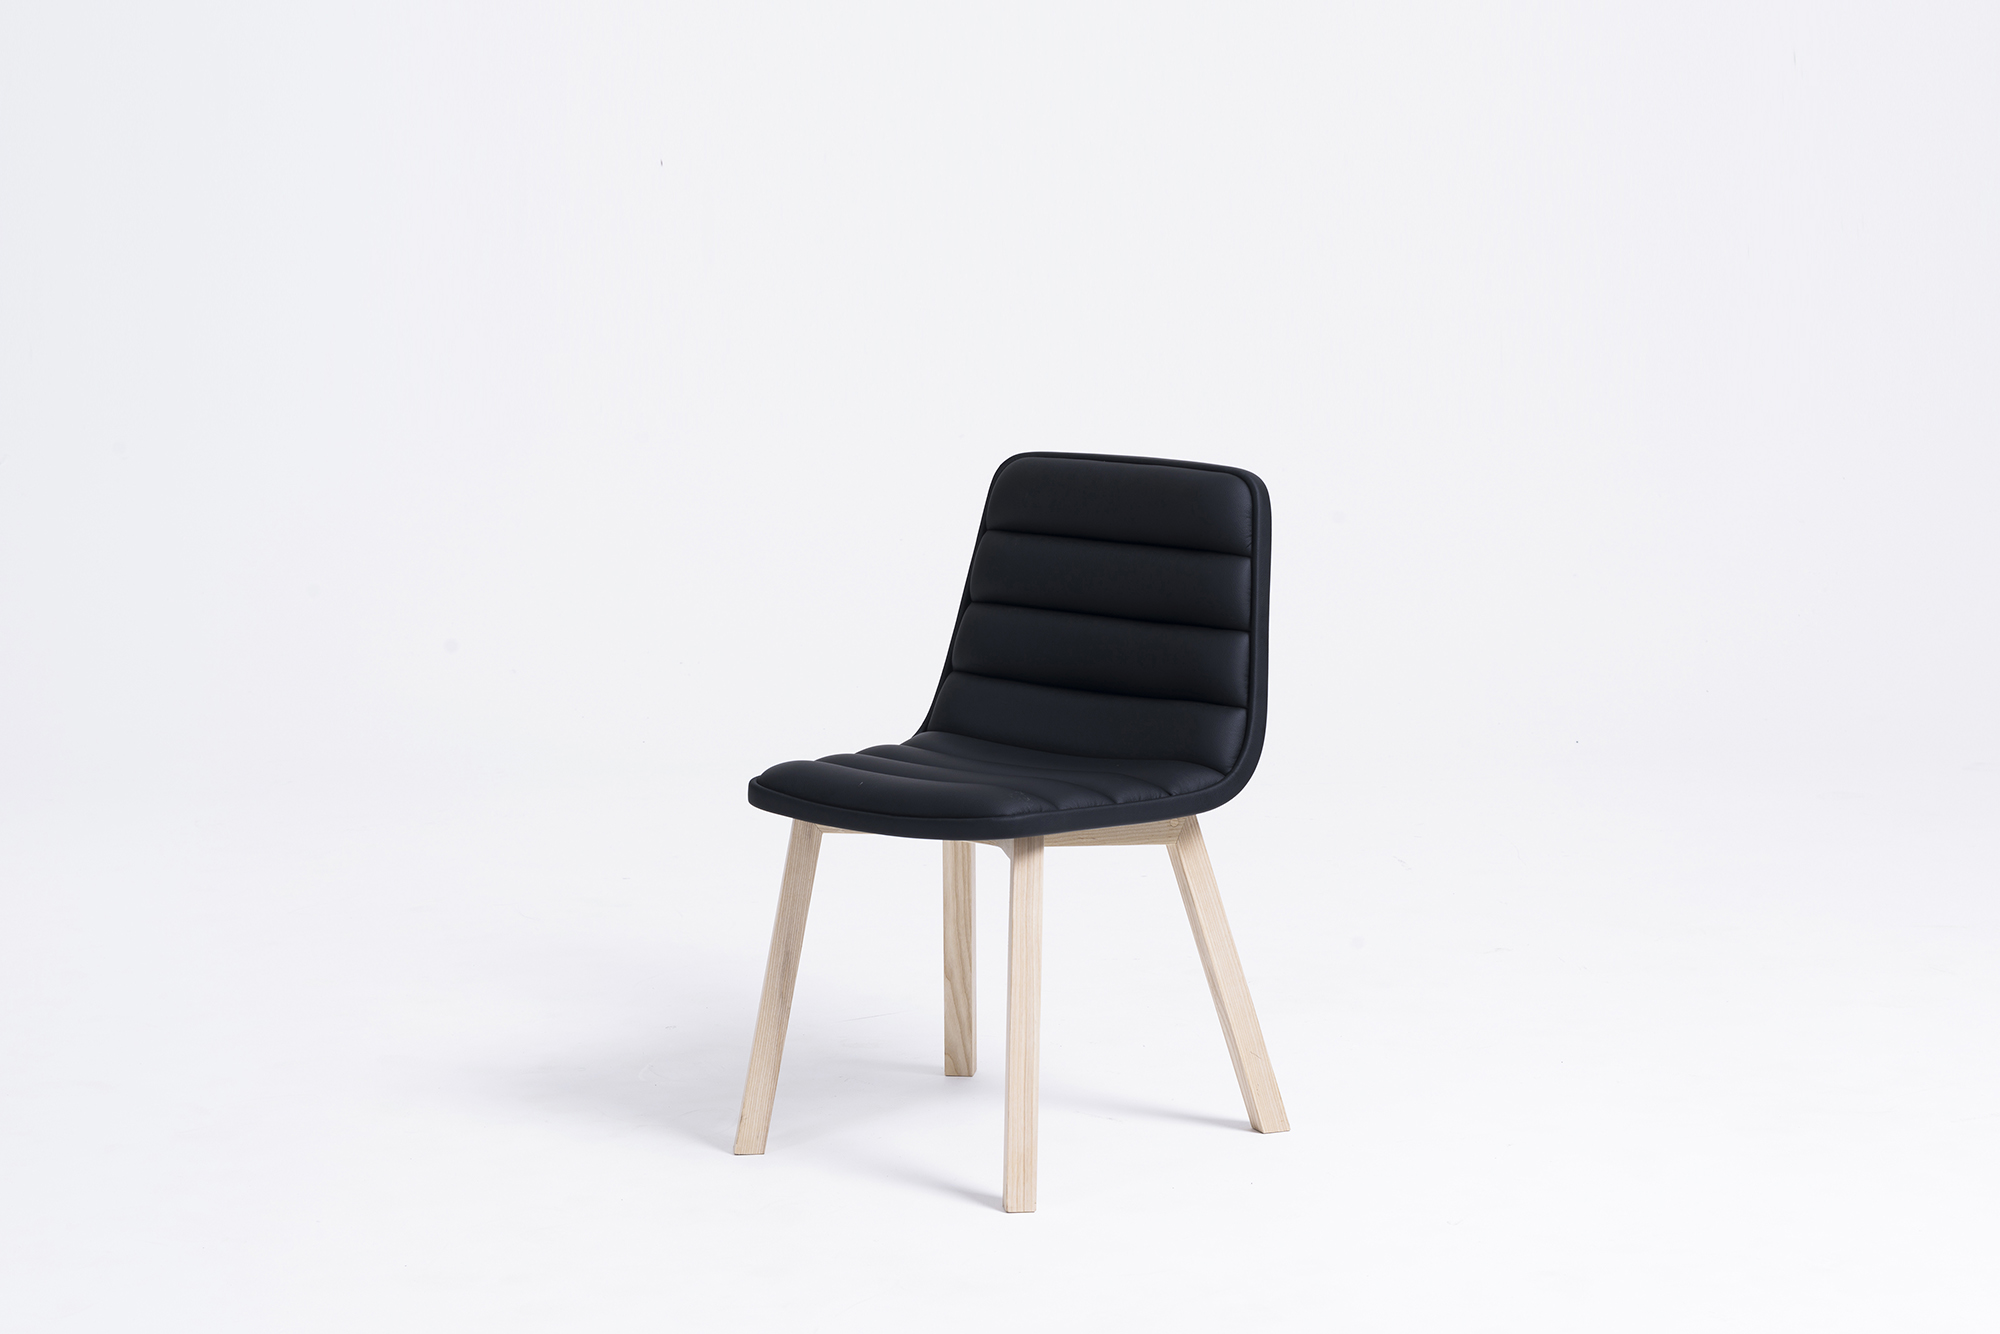 Sean Dix design Ronin Wood Leg Chair